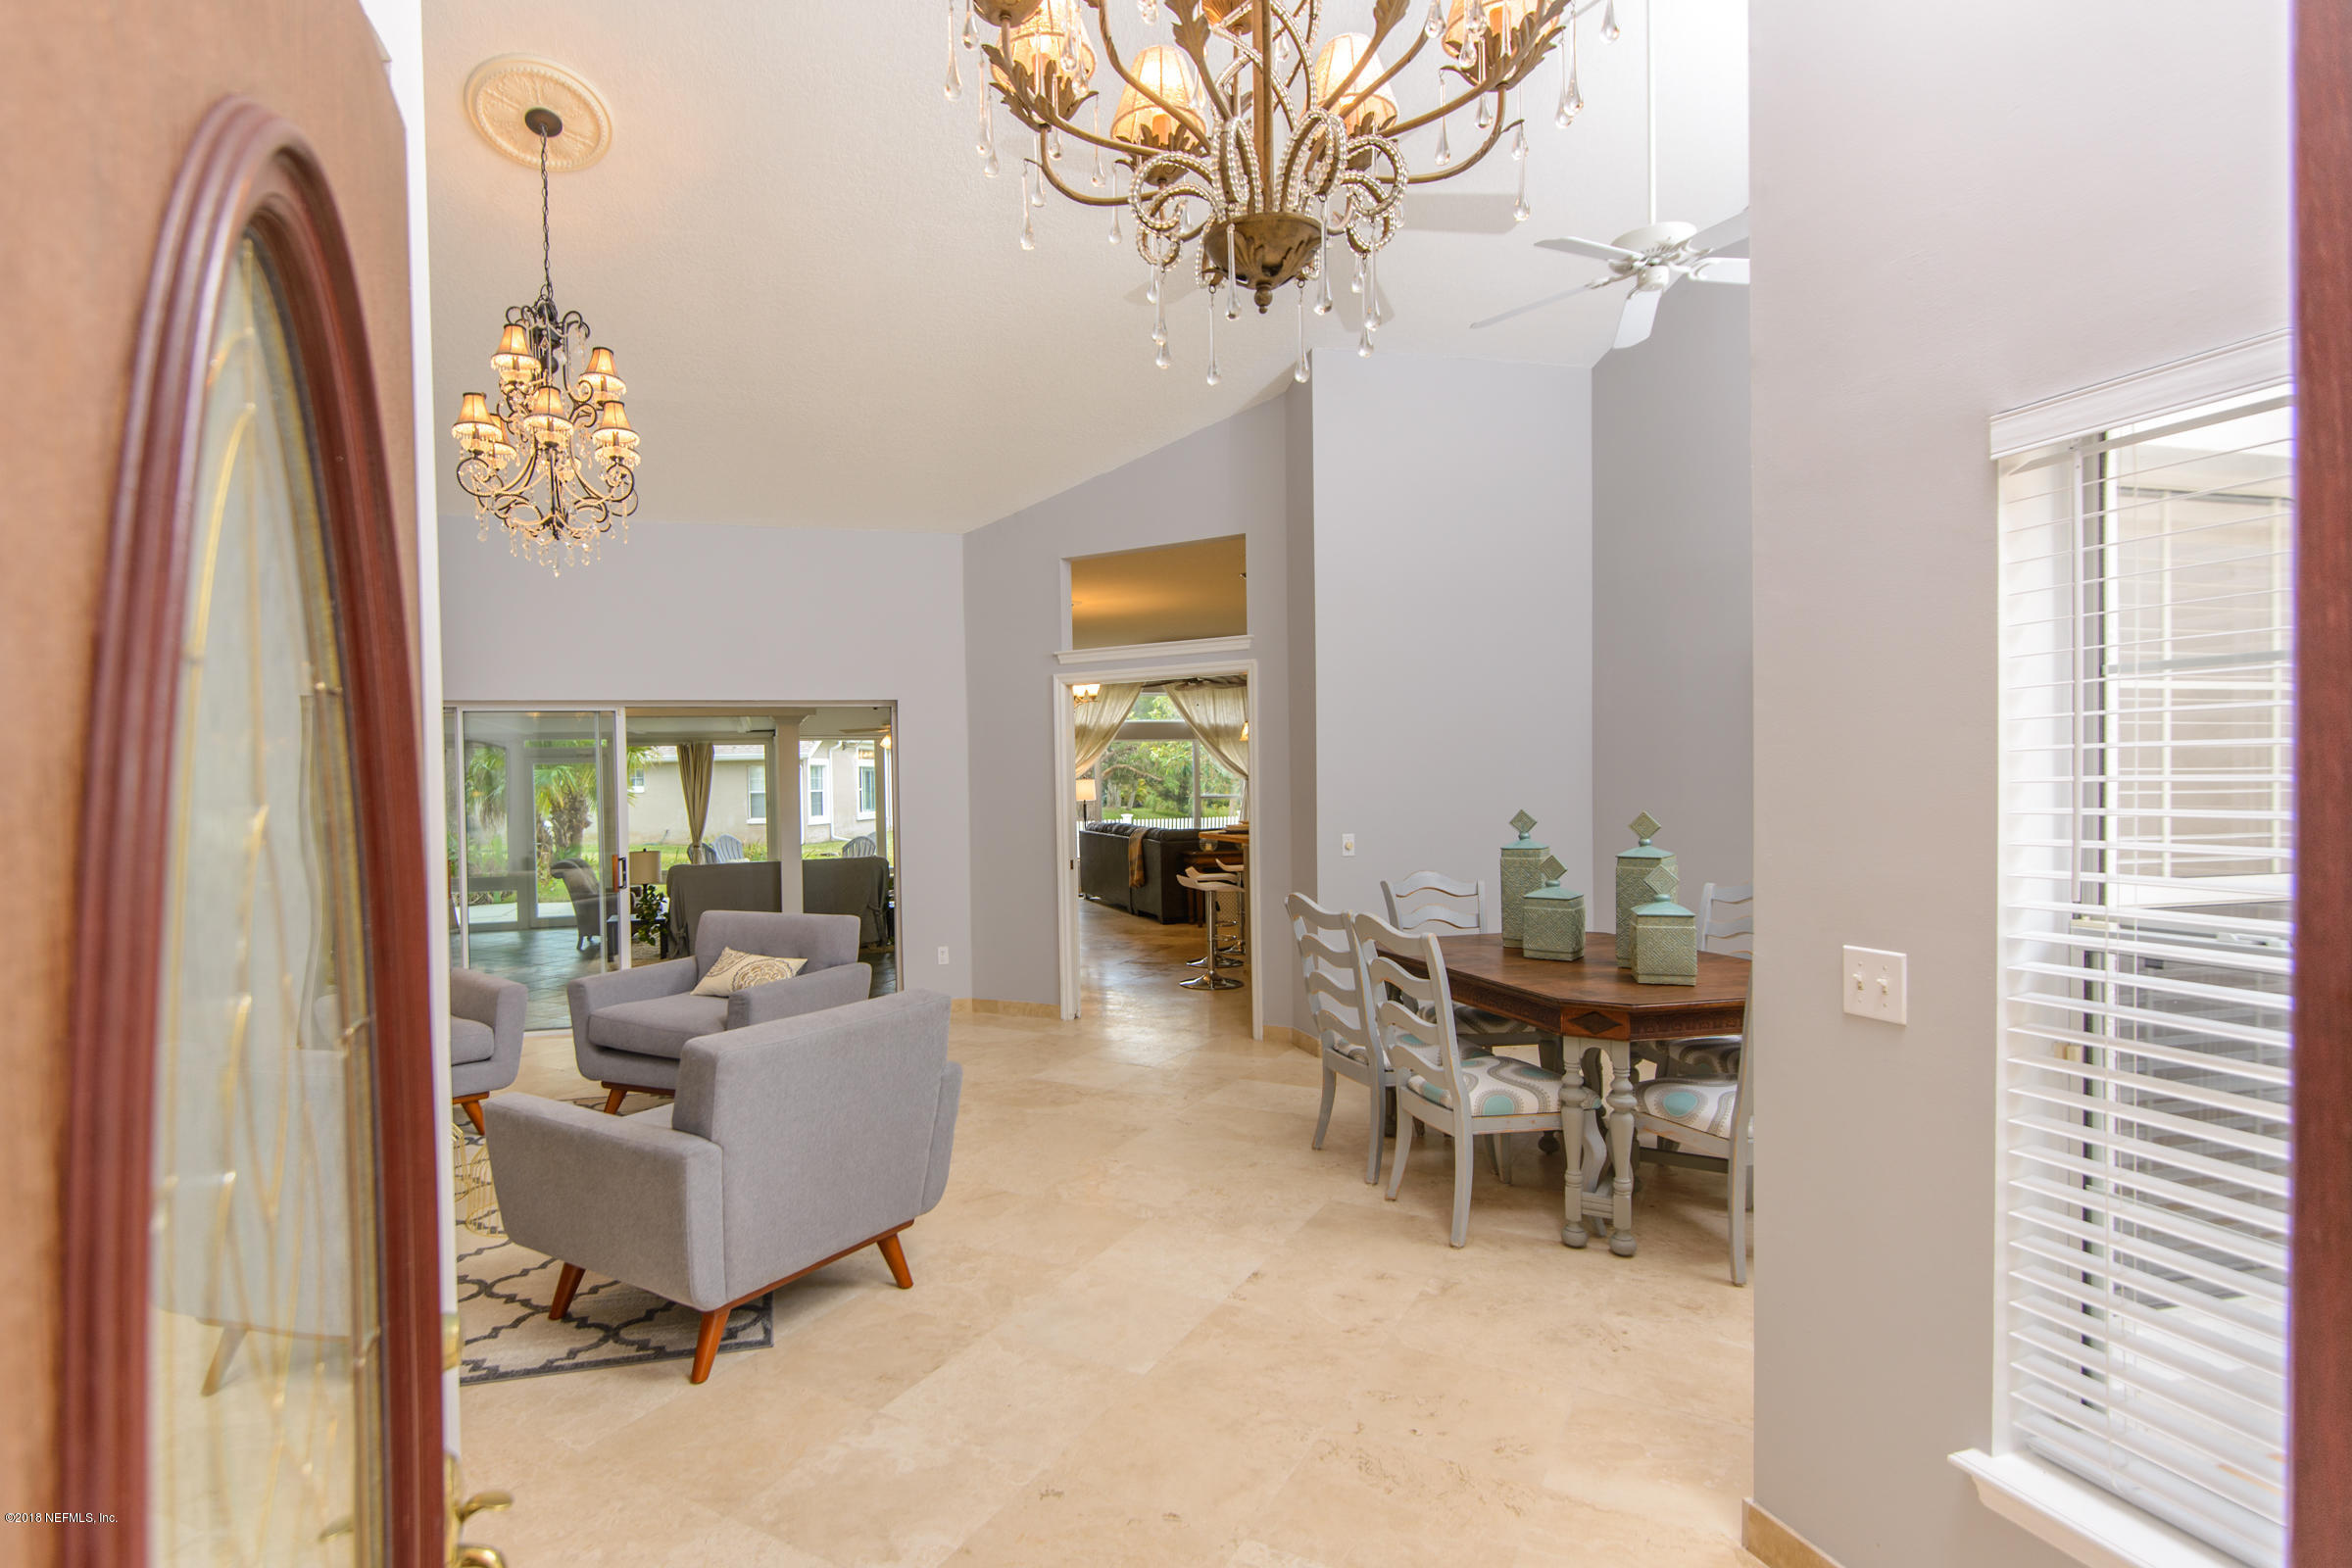 985 FISH ISLAND, ST AUGUSTINE, FLORIDA 32080, 3 Bedrooms Bedrooms, ,2 BathroomsBathrooms,Residential - single family,For sale,FISH ISLAND,916894